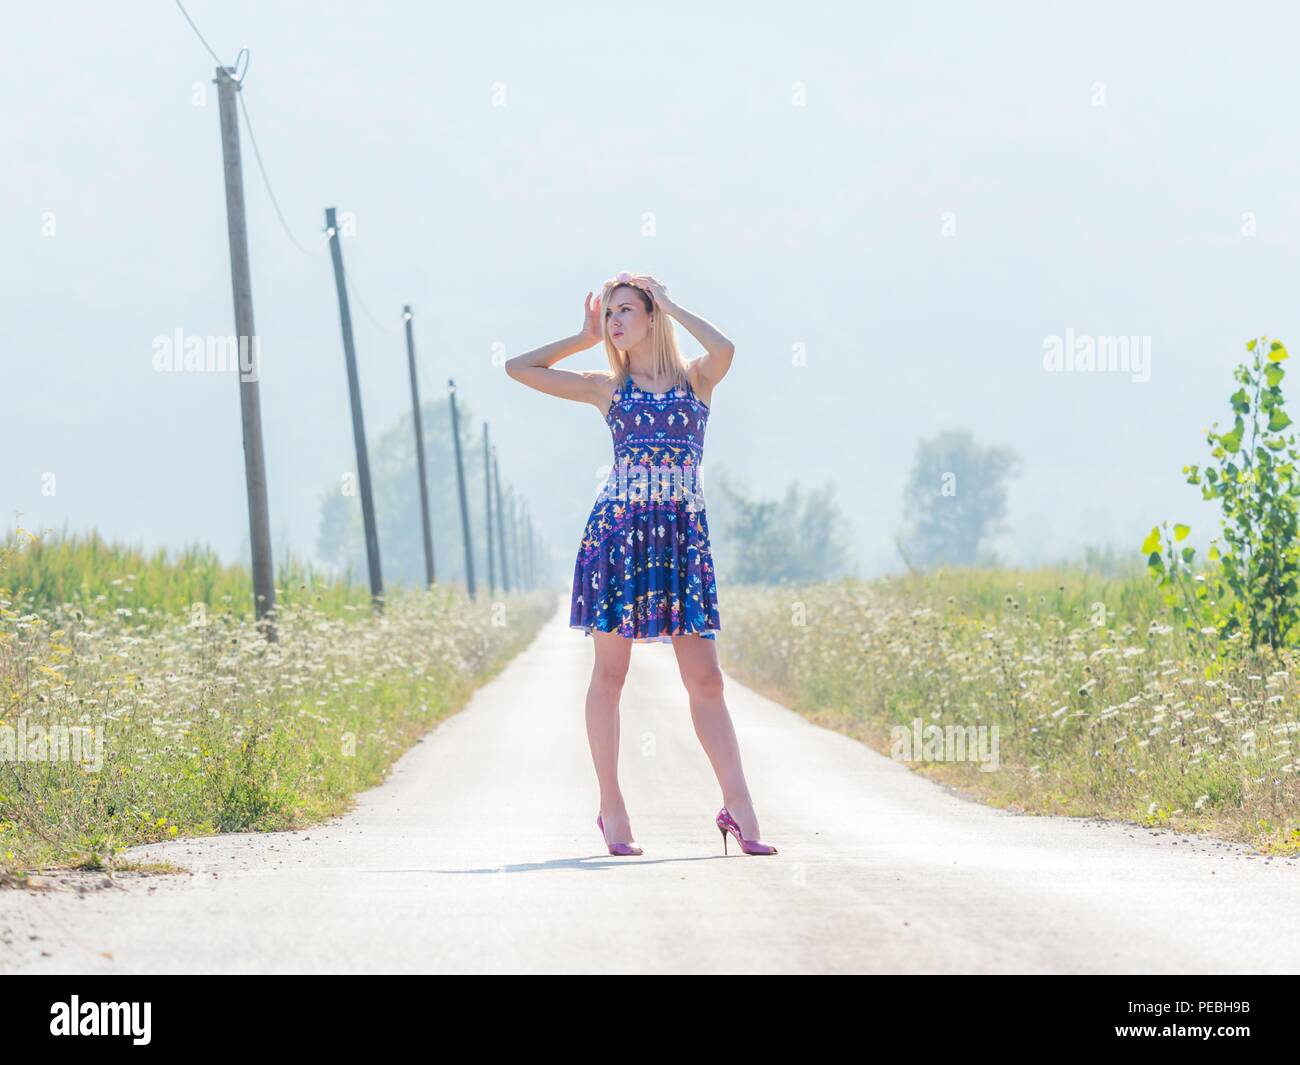 Sunlight mid-day 20s twenties attractive adult young woman outdoors by foot feet traveler traveling Stock Photo